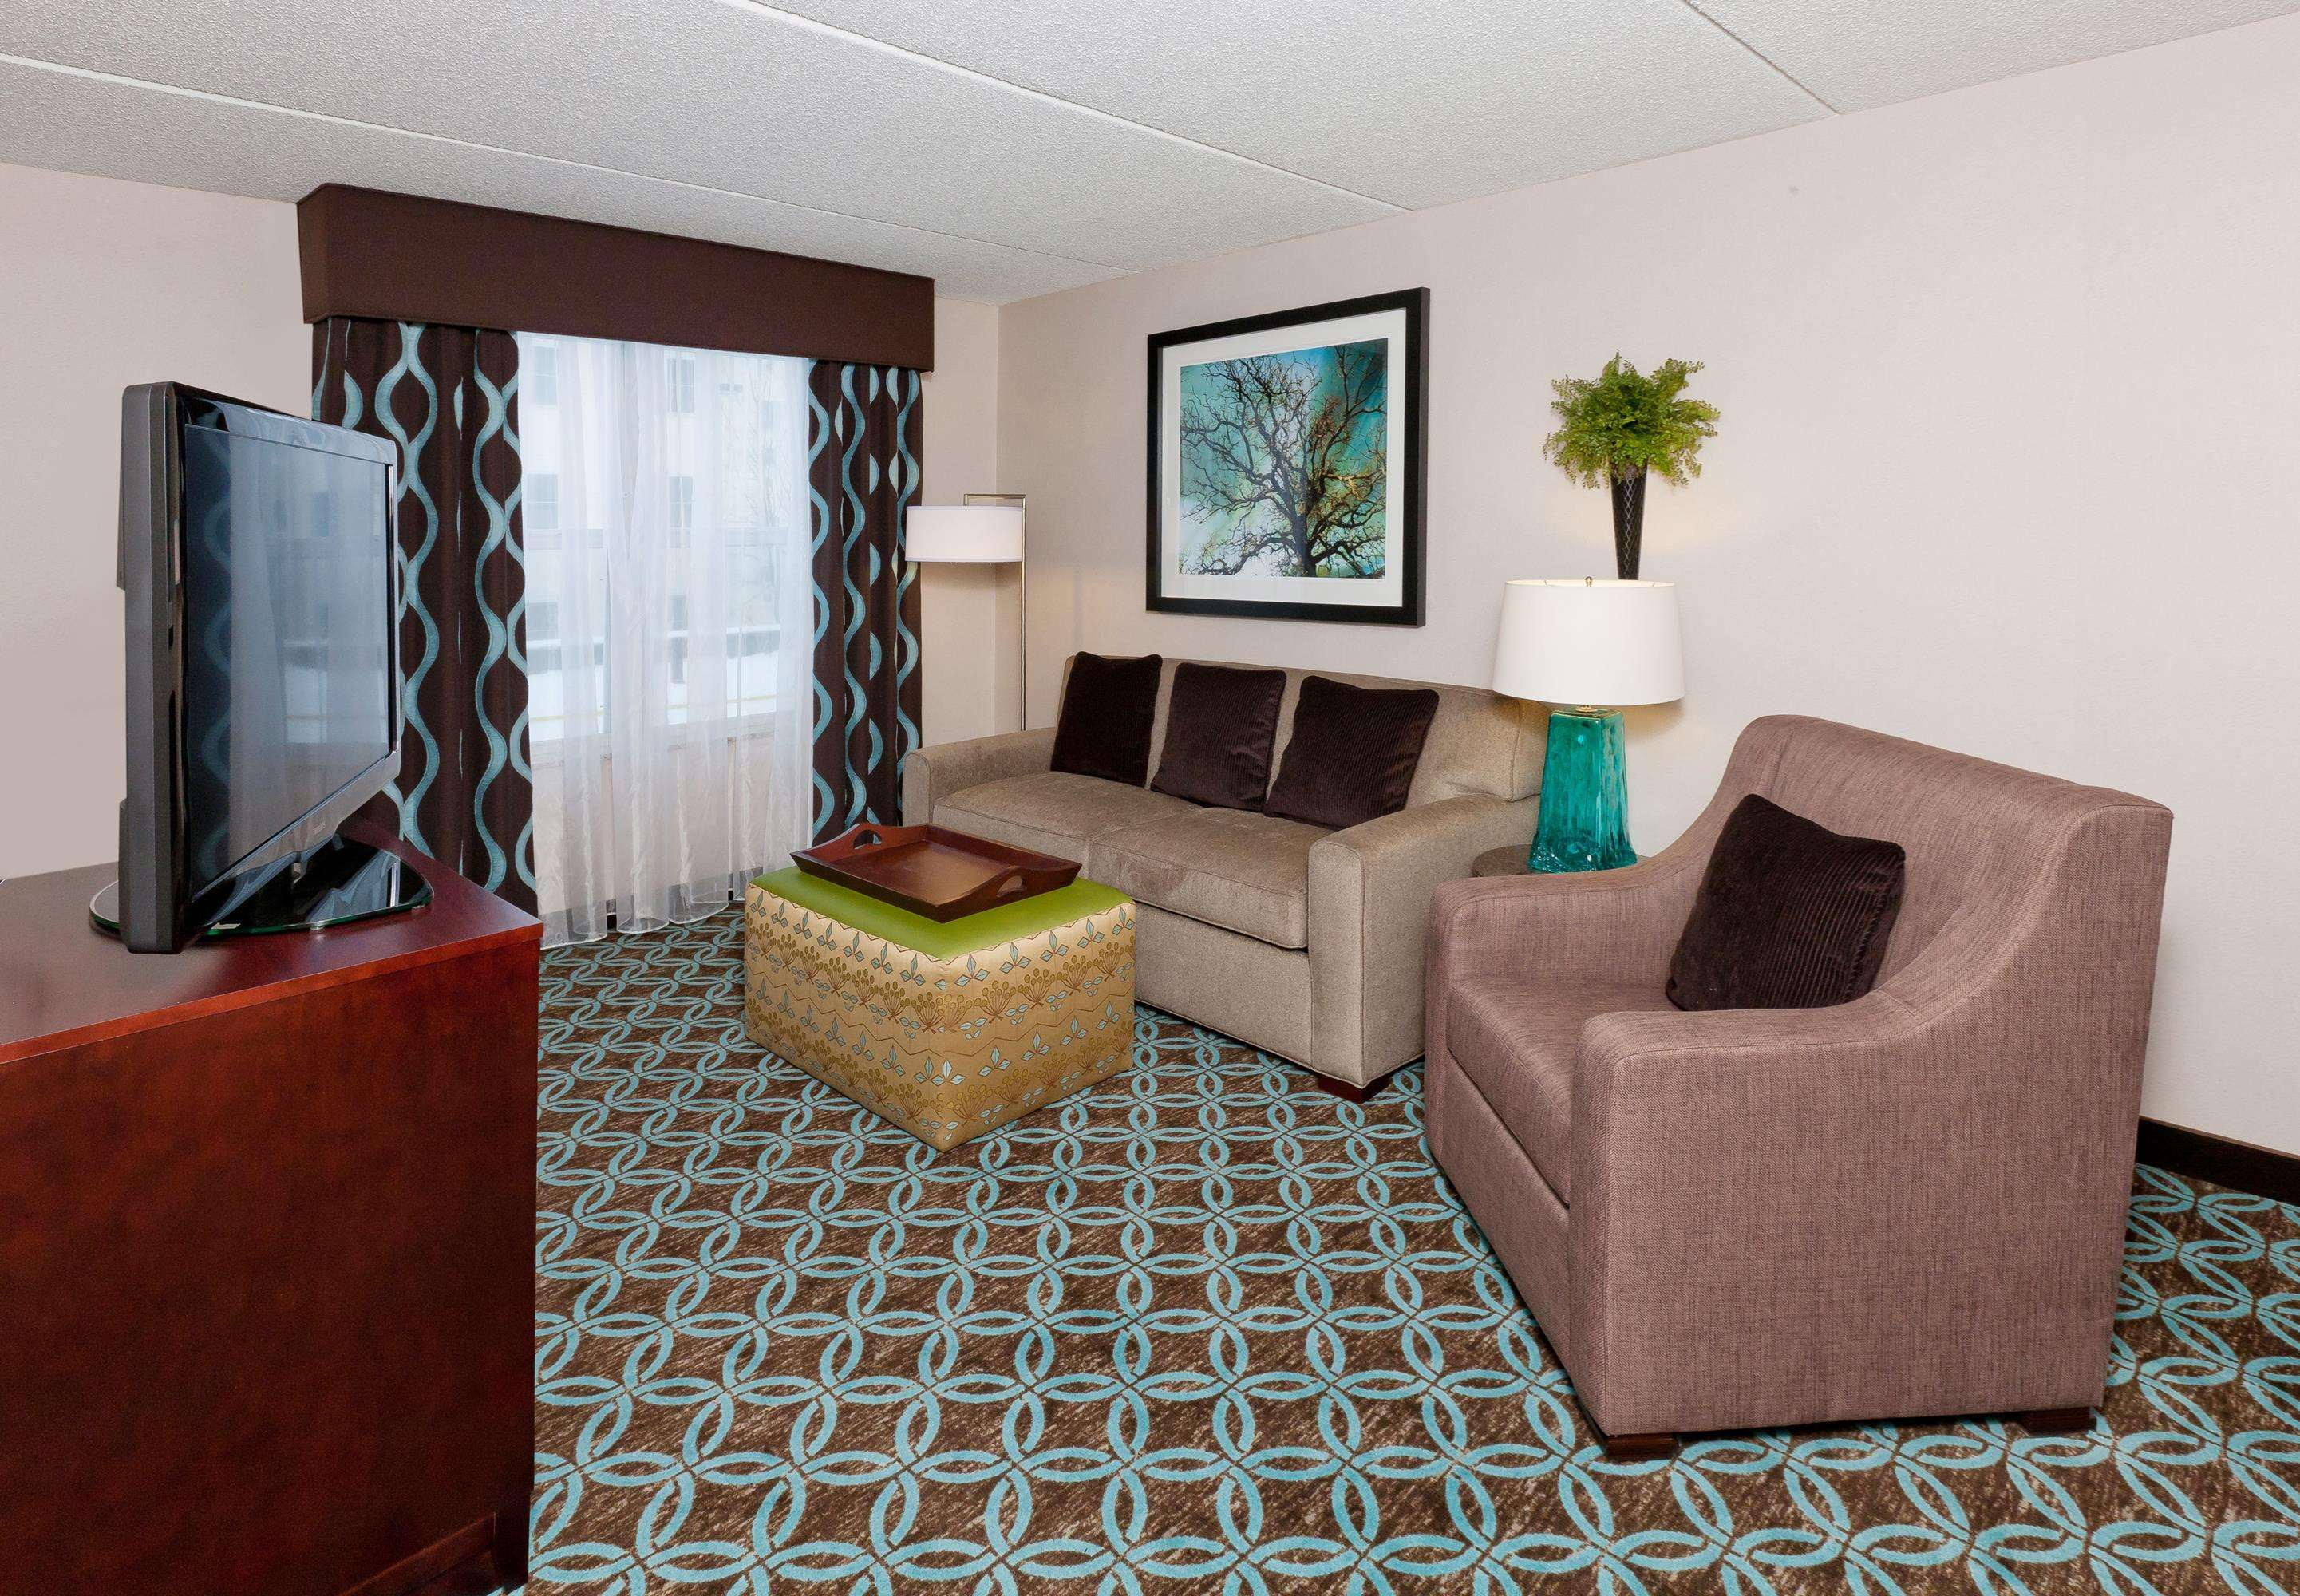 Homewood Suites by Hilton Boston/Canton, MA image 27